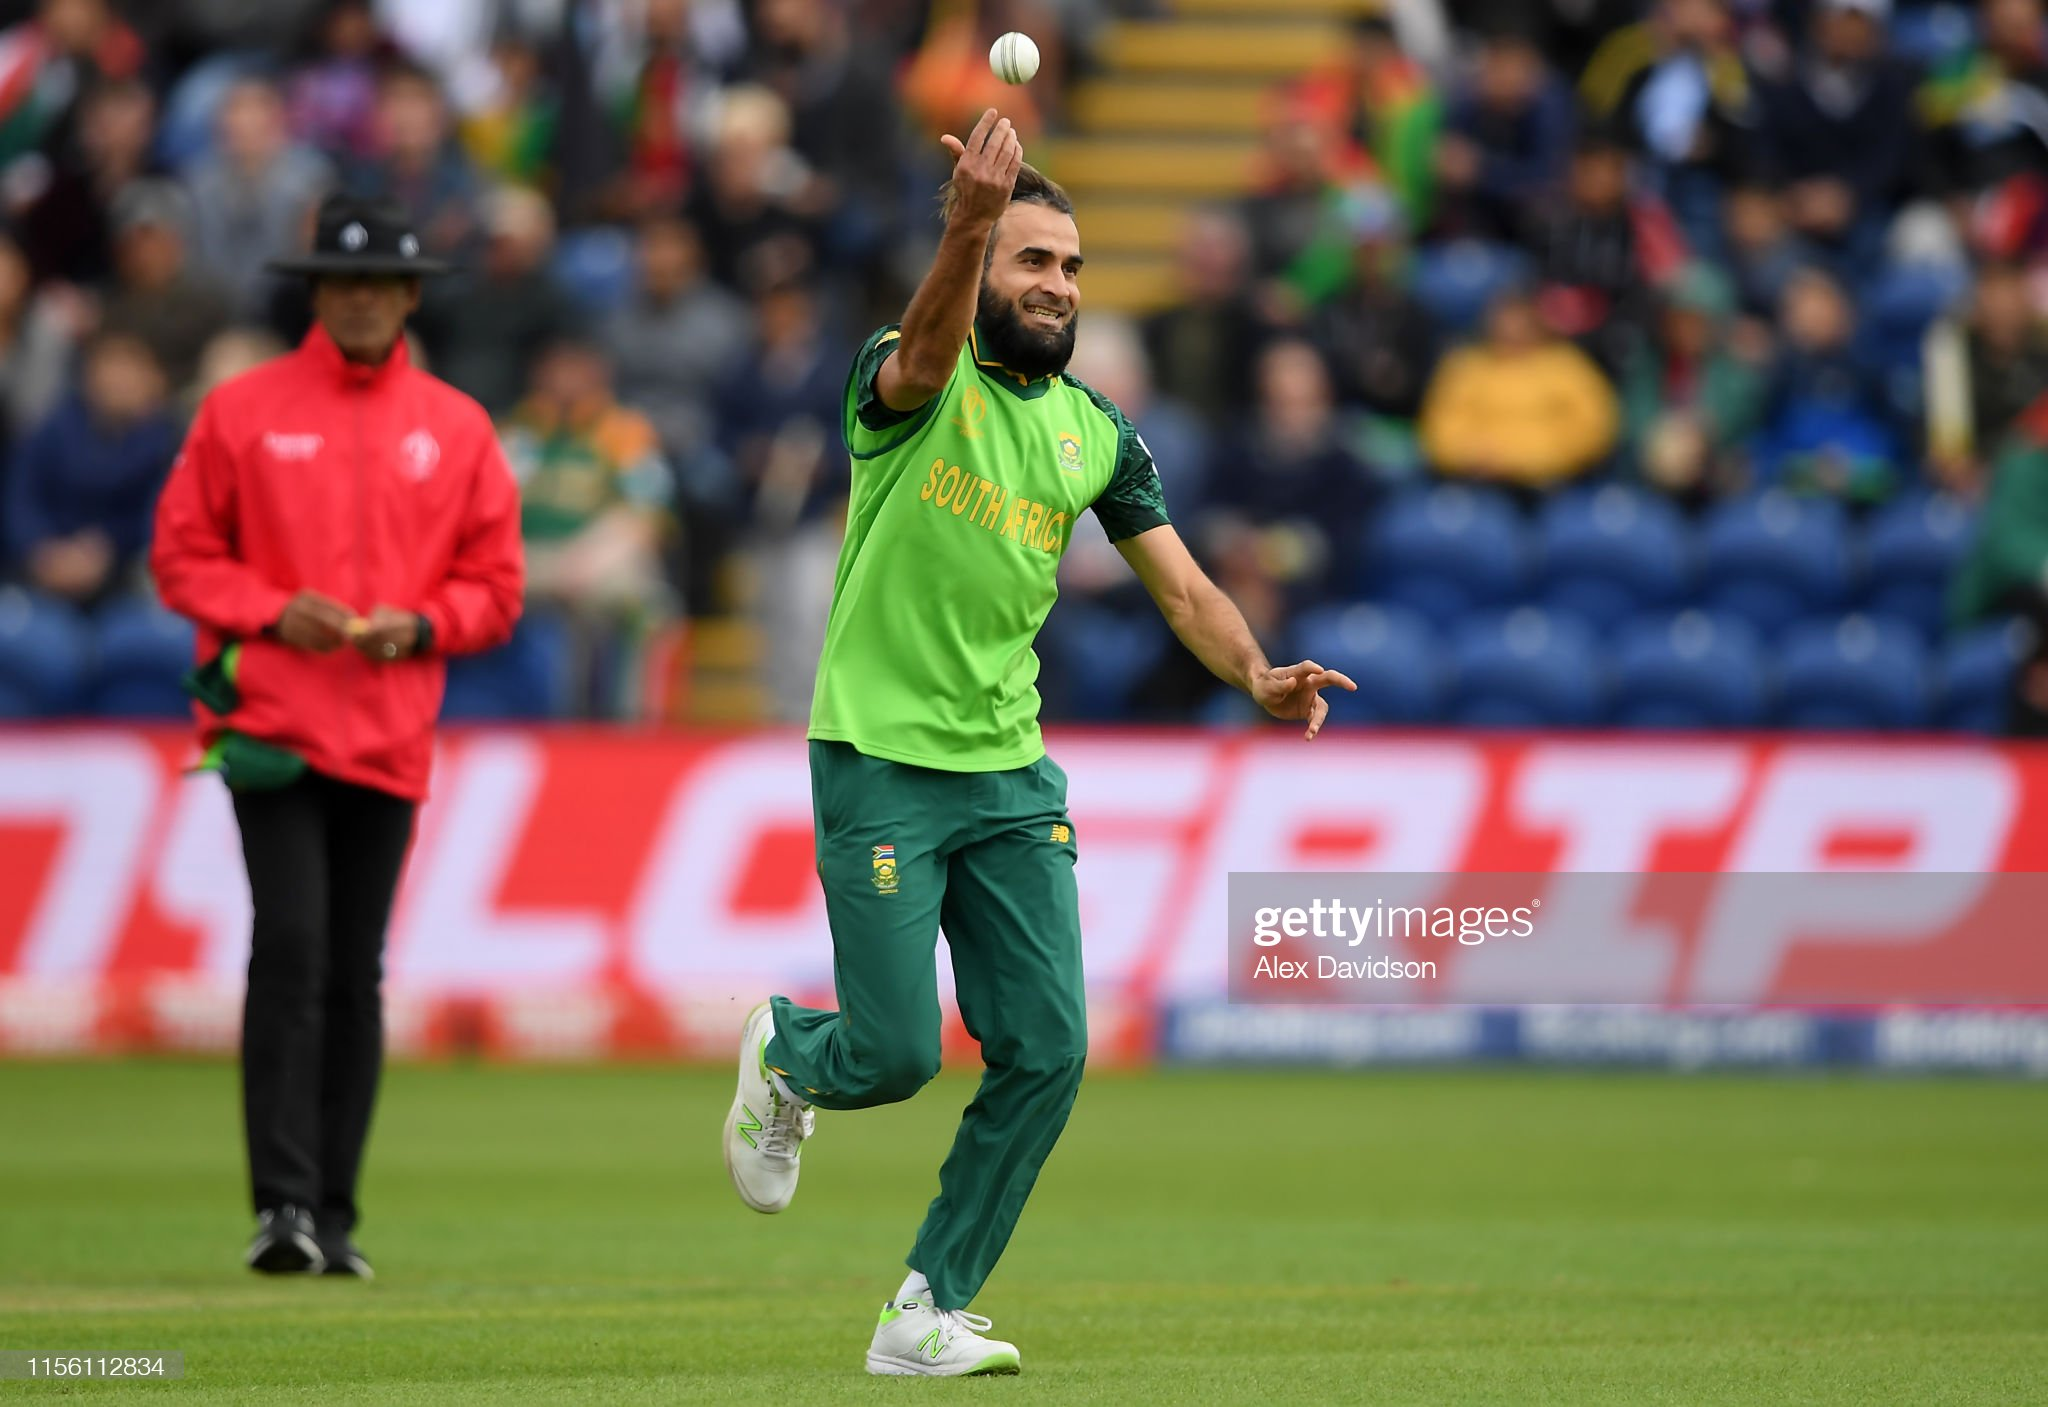 South Africa v Afghanistan - ICC Cricket World Cup 2019 : News Photo